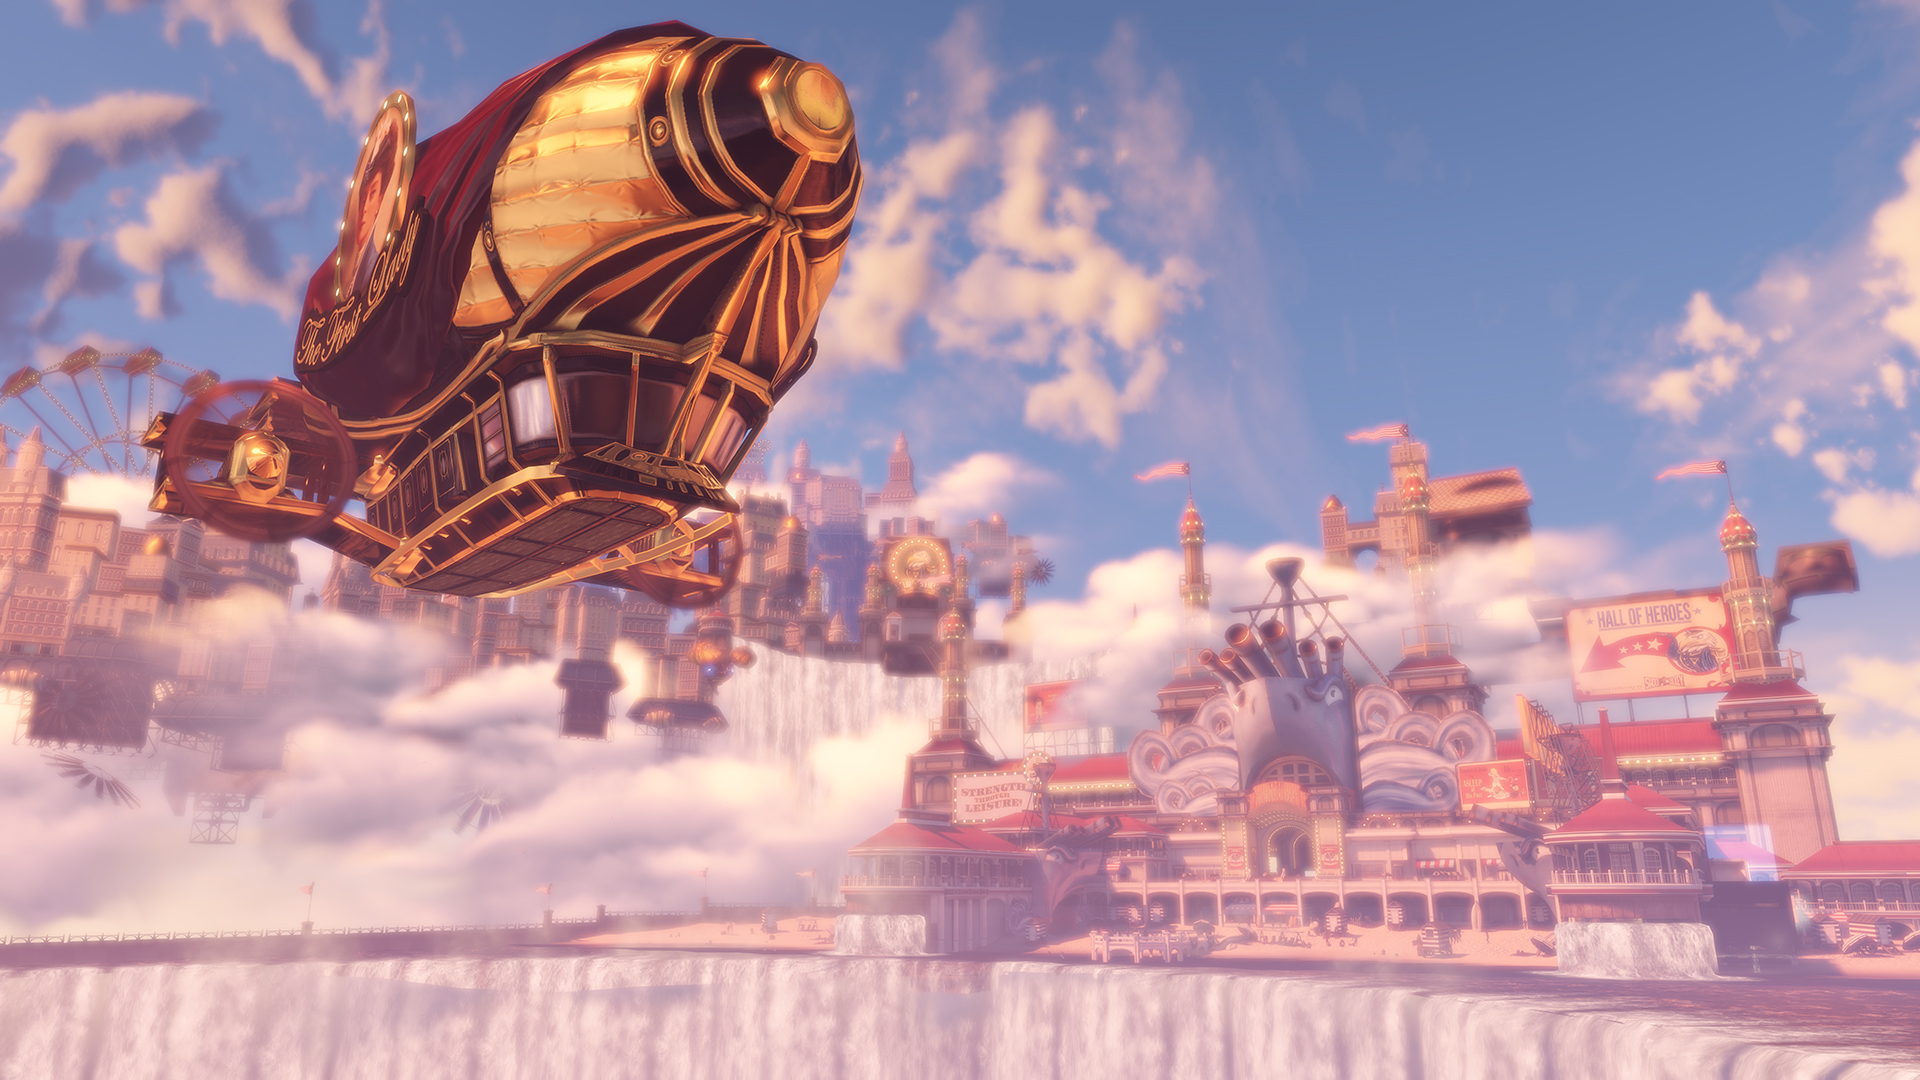 bioshock-infinite-review-cityinthesky-online-wideuse.jpg